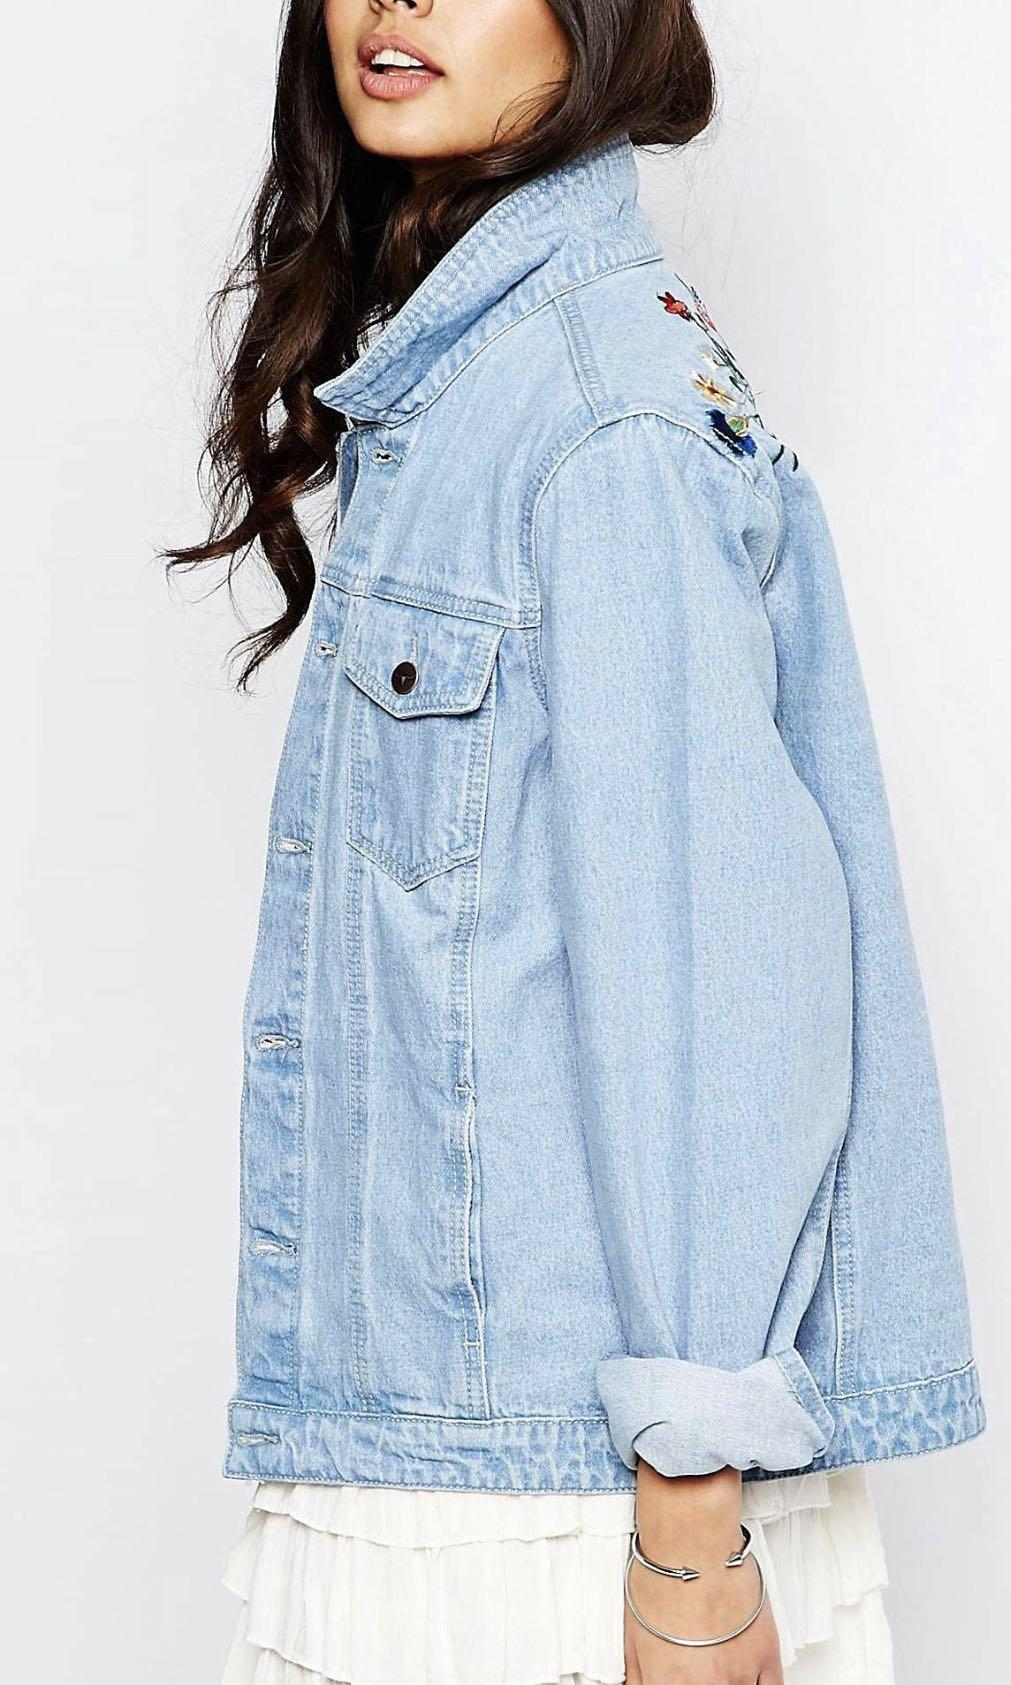 Oversized Denim Jacket with embroidery